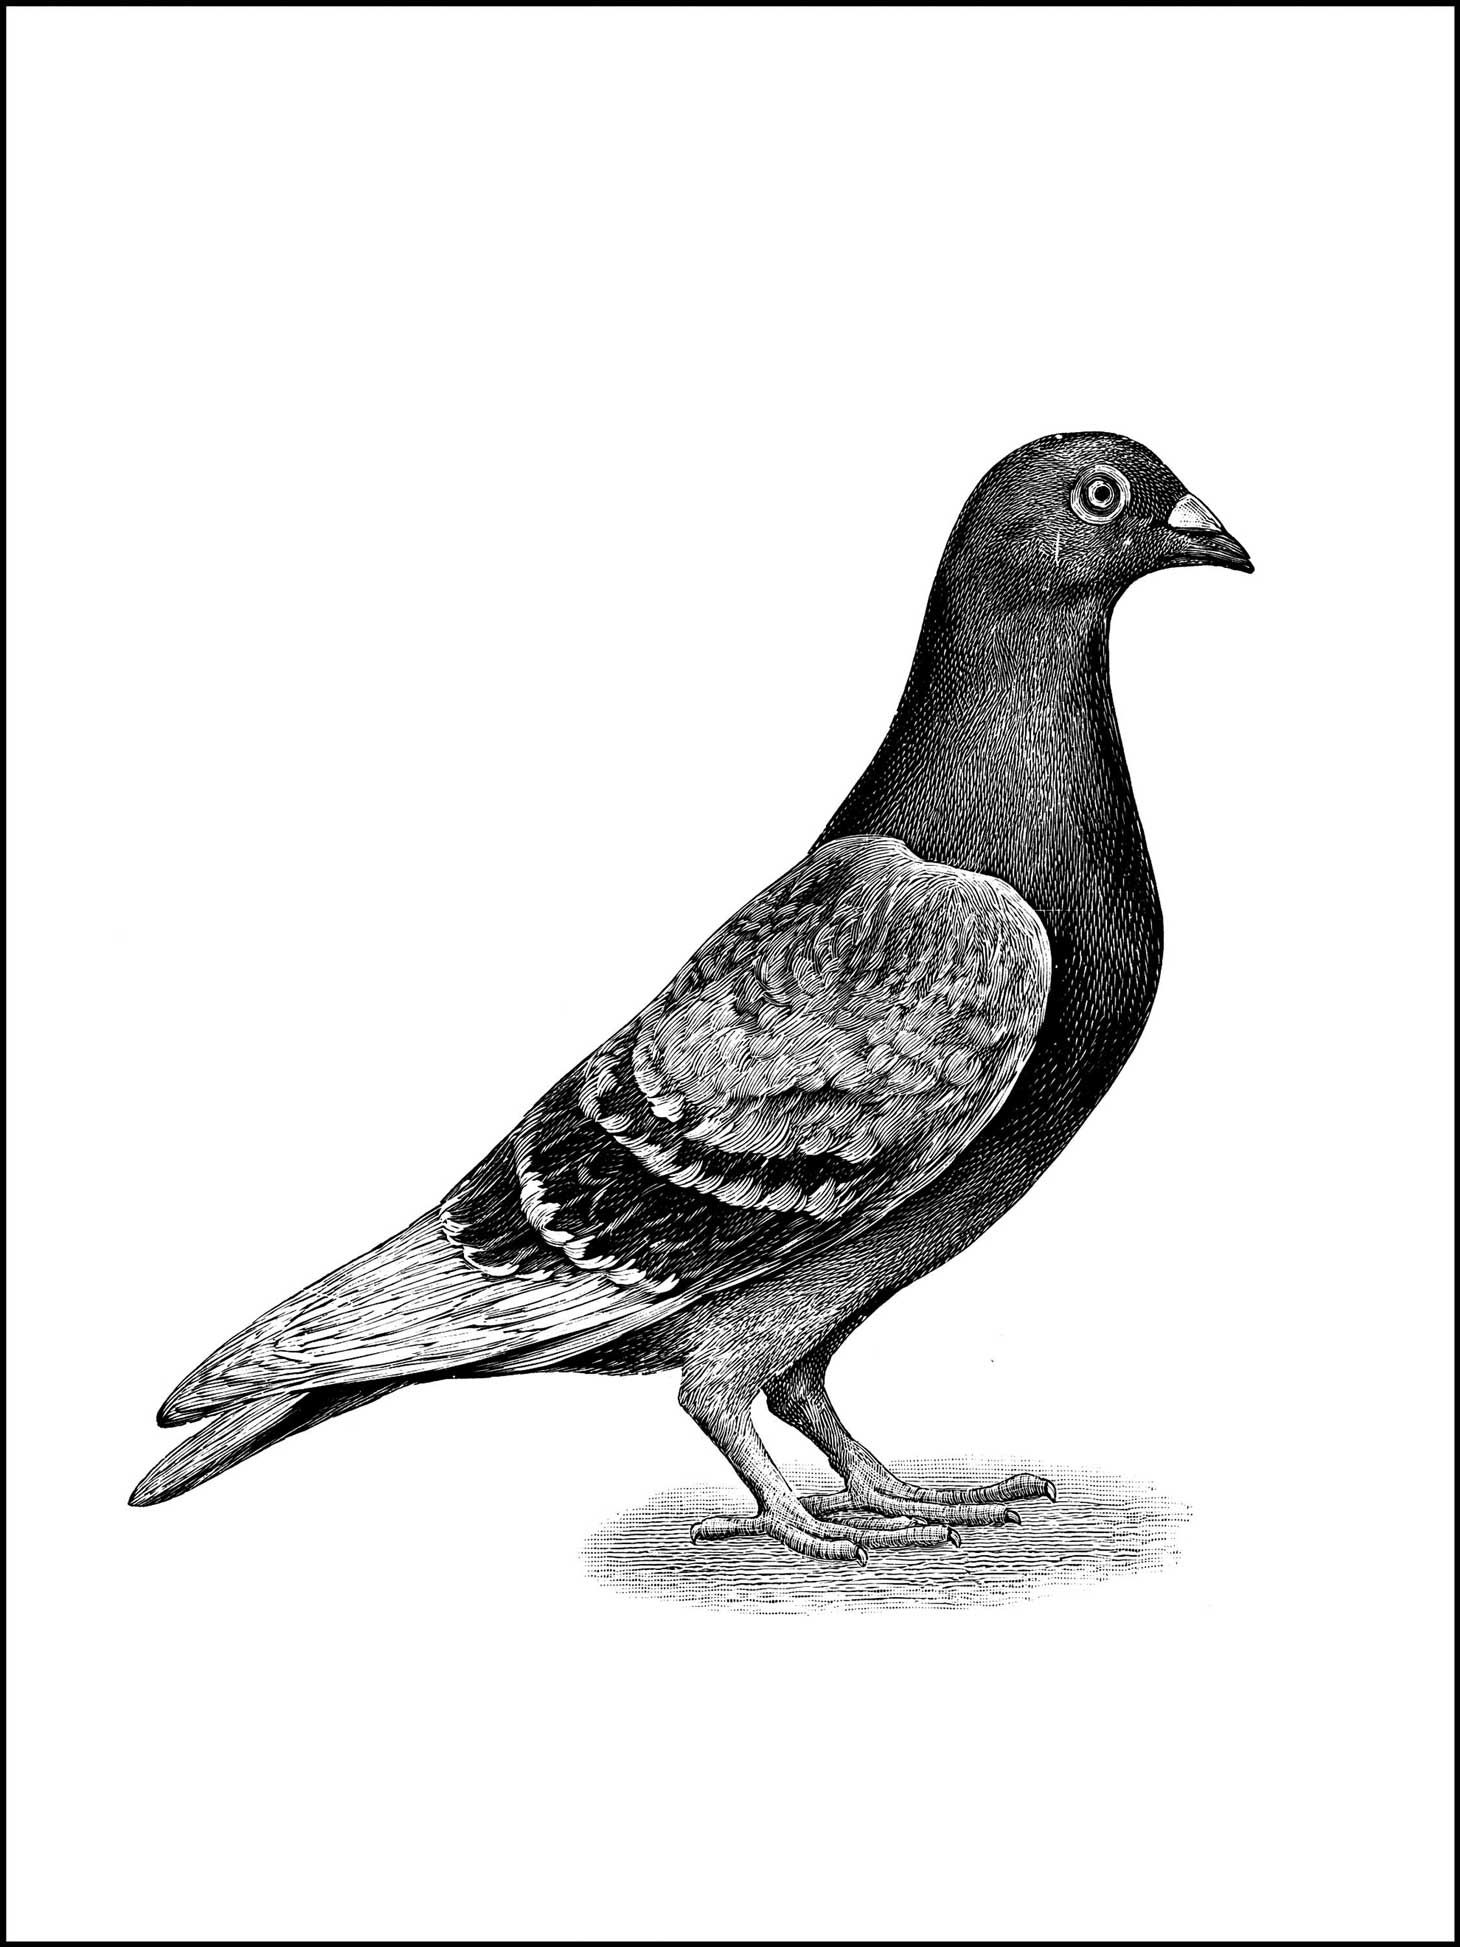 coloring pages - a pigeon, or bird to color | Birds and Birds and ...